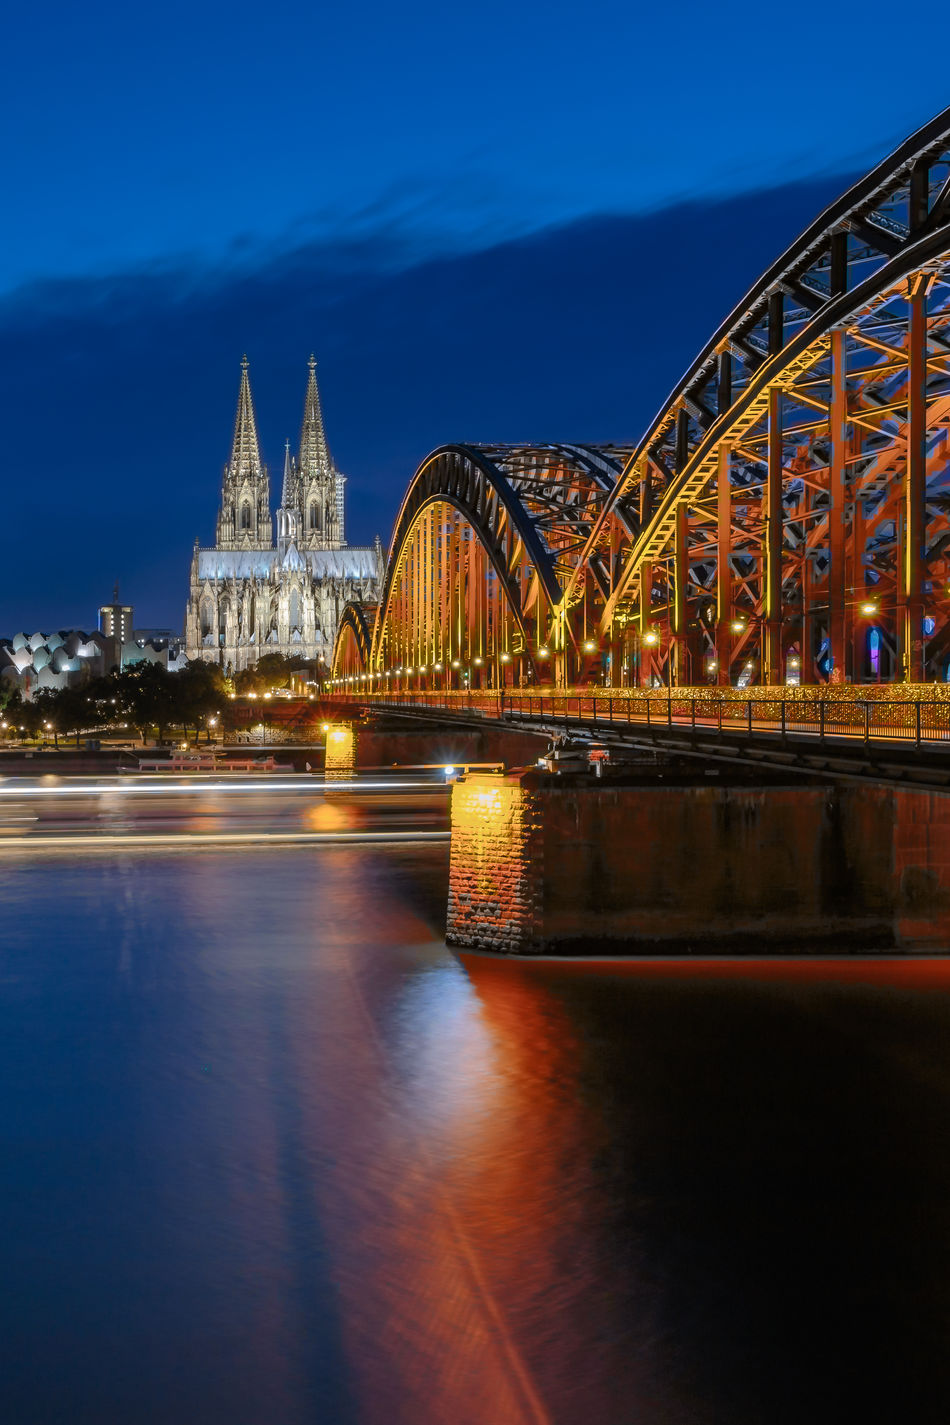 Architecture Art Austrianphotographers Bridge - Man Made Structure Building Exterior Built Structure City Connection GERMANY🇩🇪DEUTSCHERLAND@ Illuminated Köln, Germany Kölner Dom Langzeitbelichtung Long Exposure Night No People Outdoors River Sky Transportation Travel Destinations Water Waterfront Art Is Everywhere EyeEm Diversity The Secret Spaces